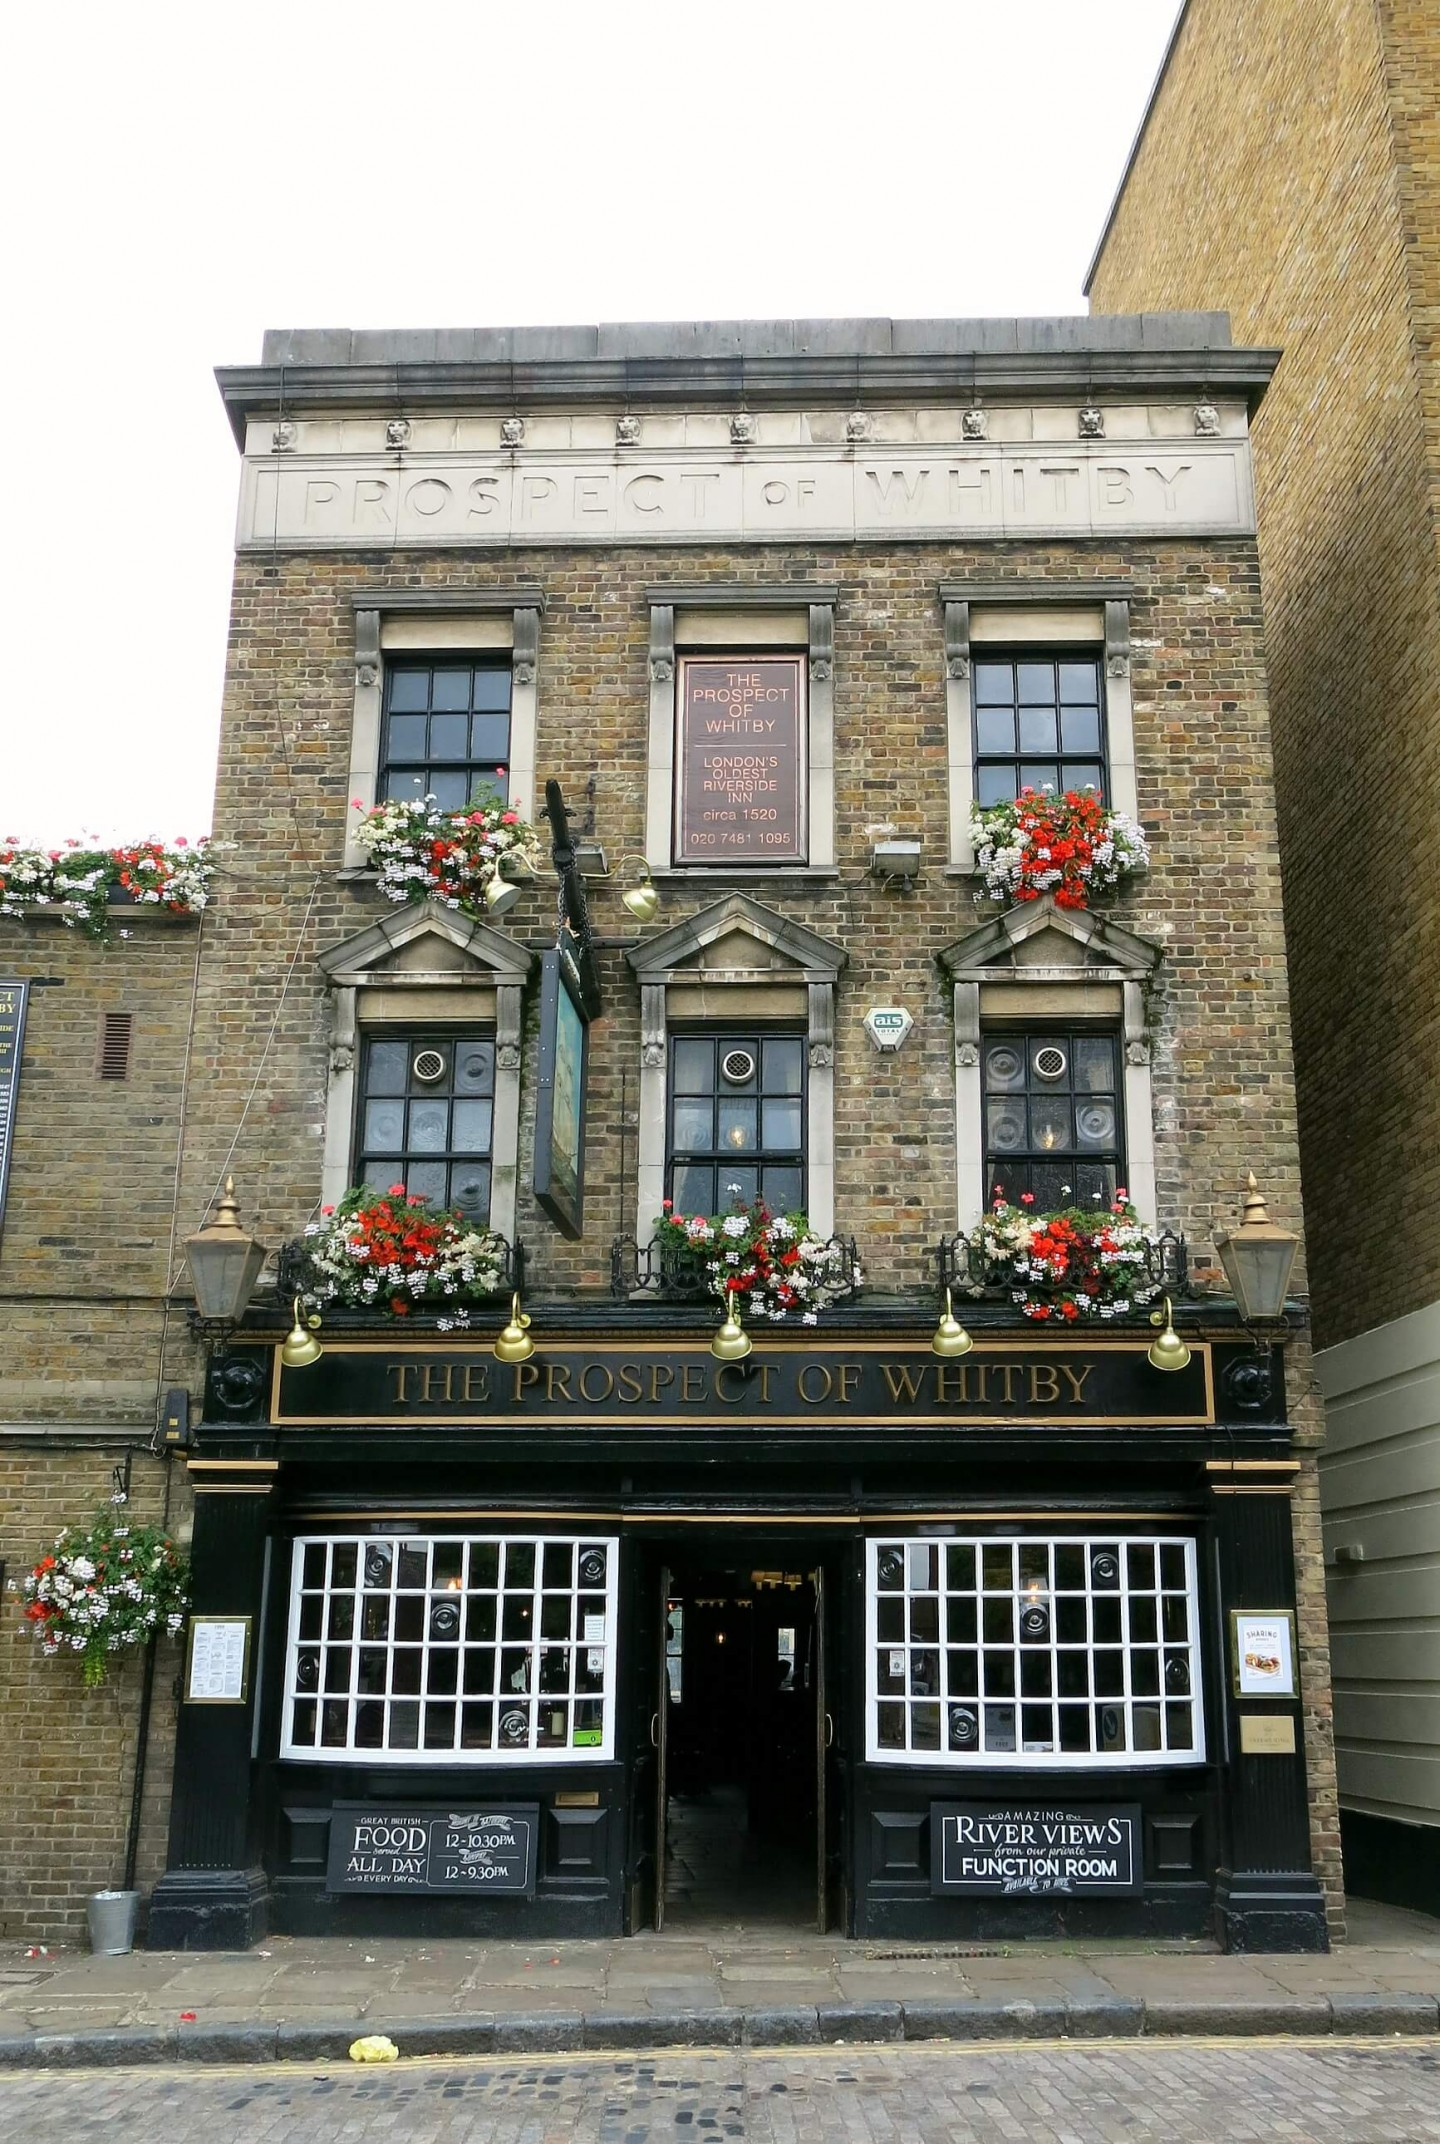 A food tour around the historic docks of London. With 5 different courses you stop at 5 different pubs!